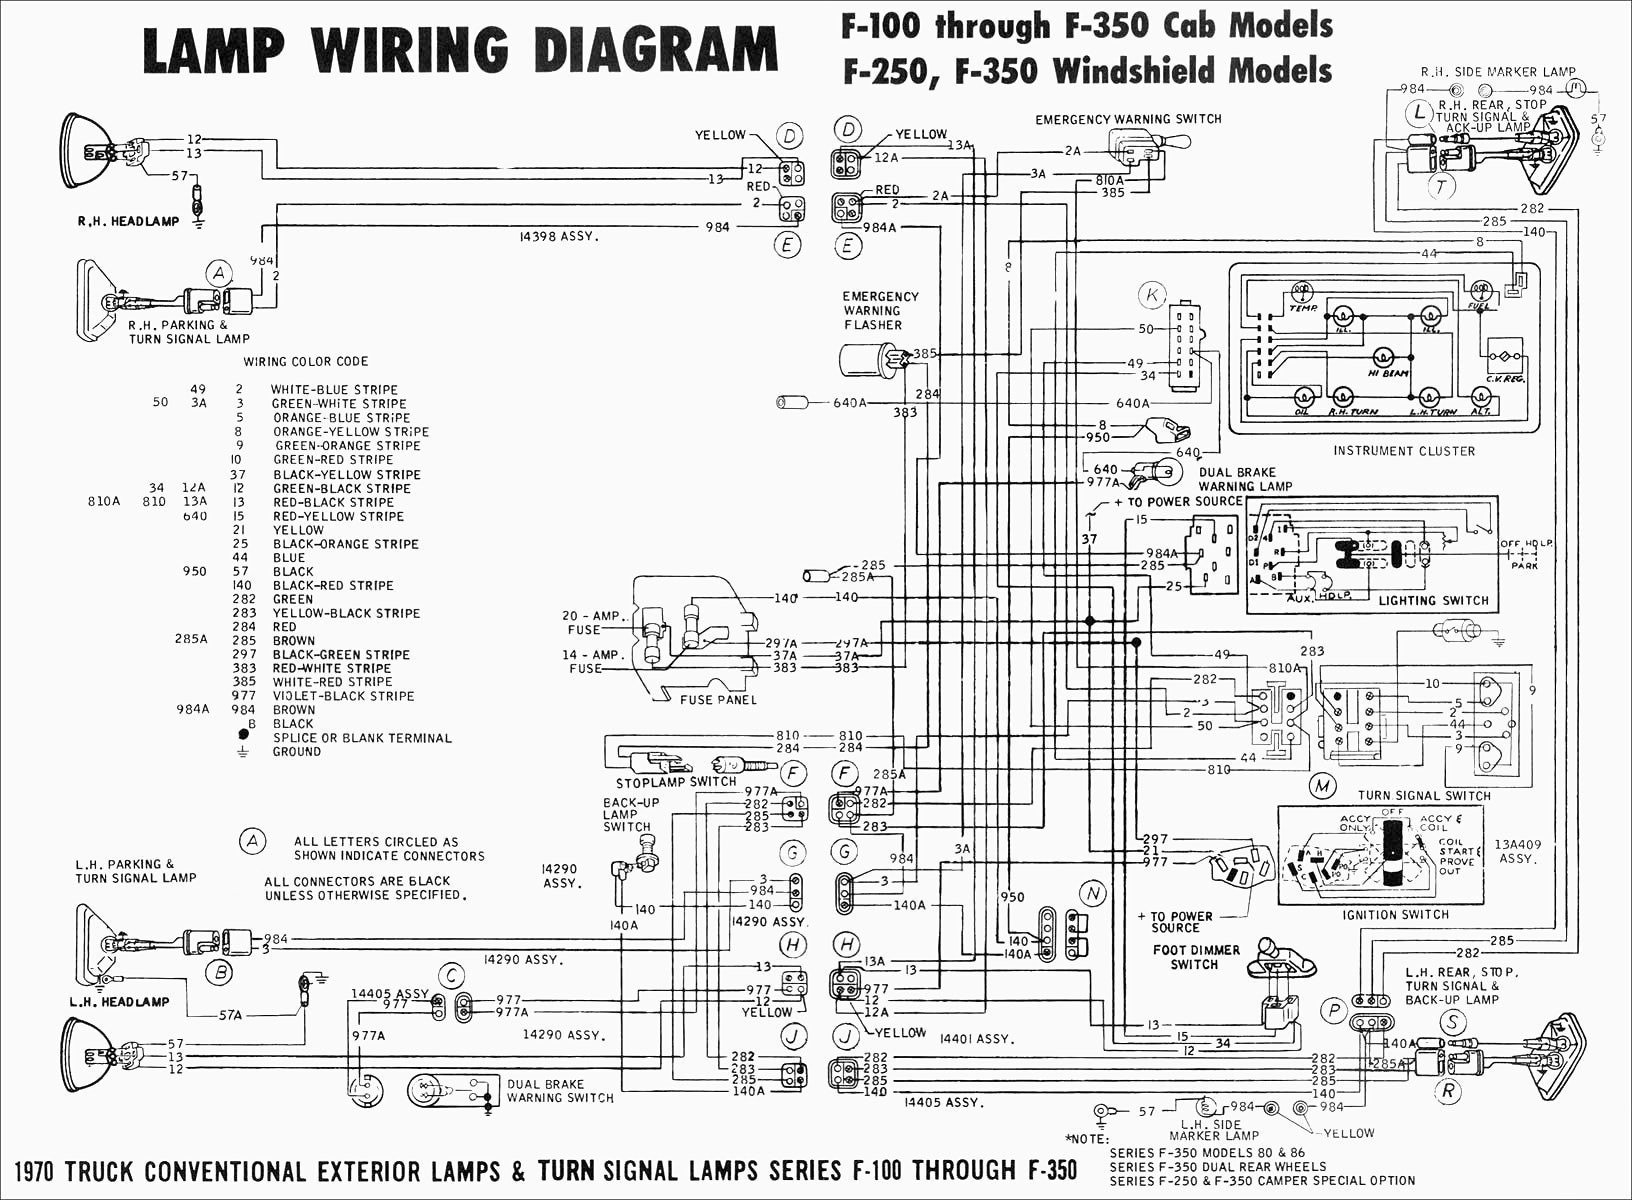 ach wiring diagram model 8 repair manual